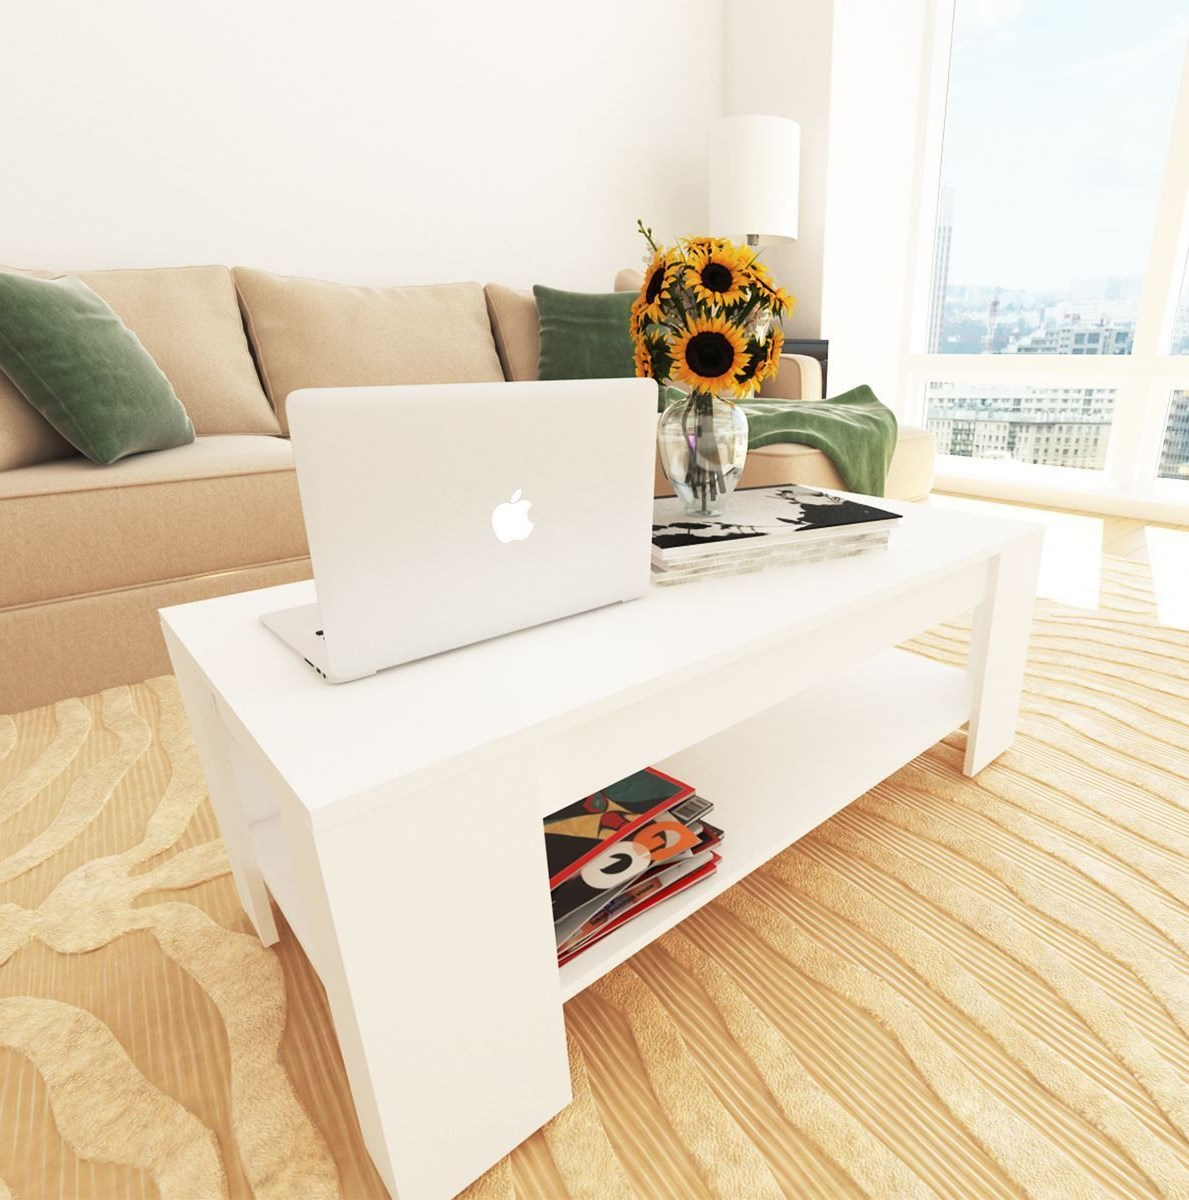 New Caspian White Lift Up Top Coffee Table with Storage